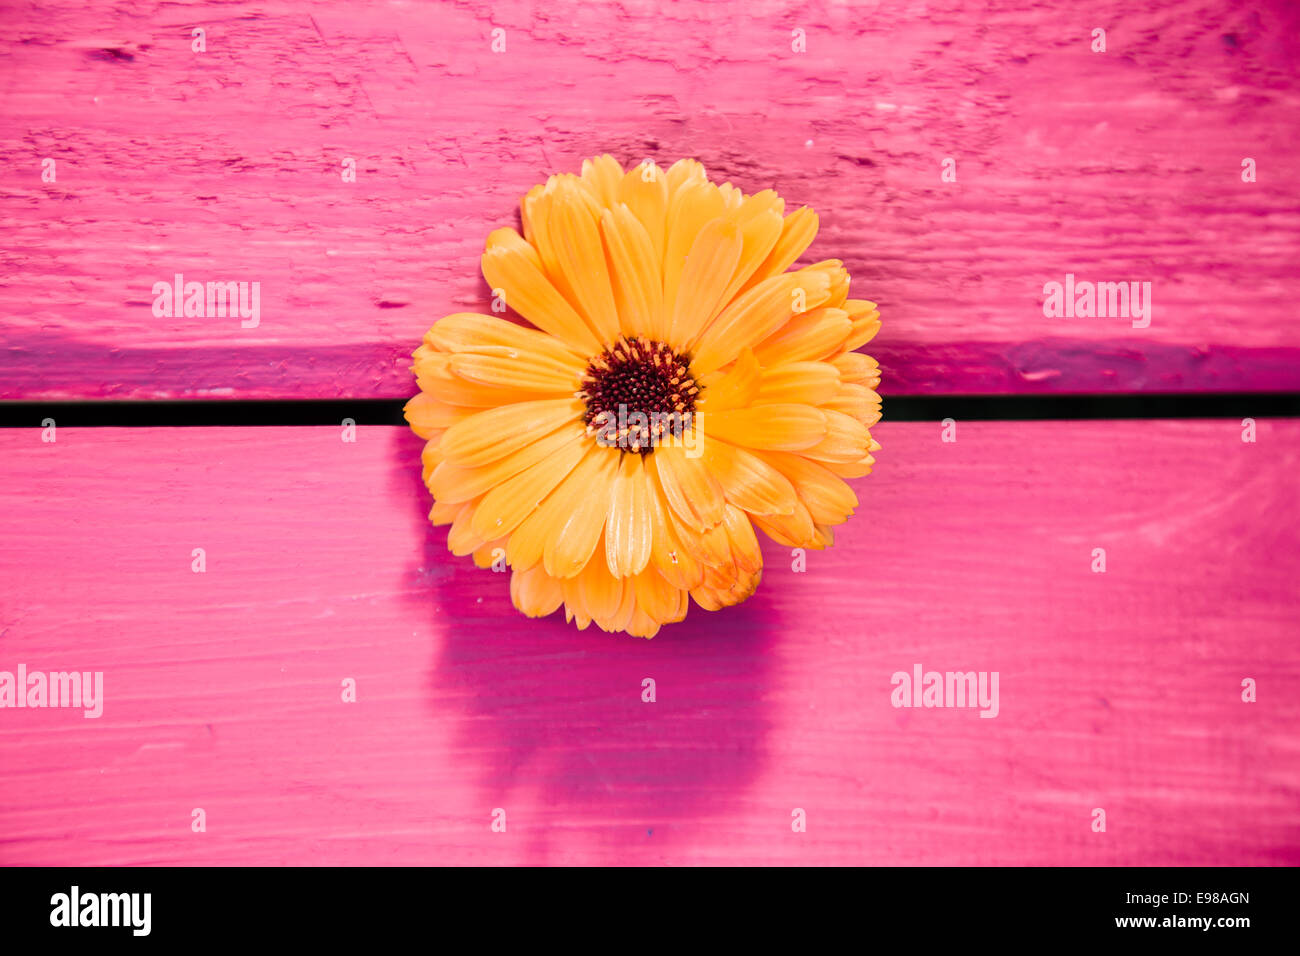 Yellow gerbera flower, symbol of delicacy and distinction, on a wooden table, painted in pink - Stock Image